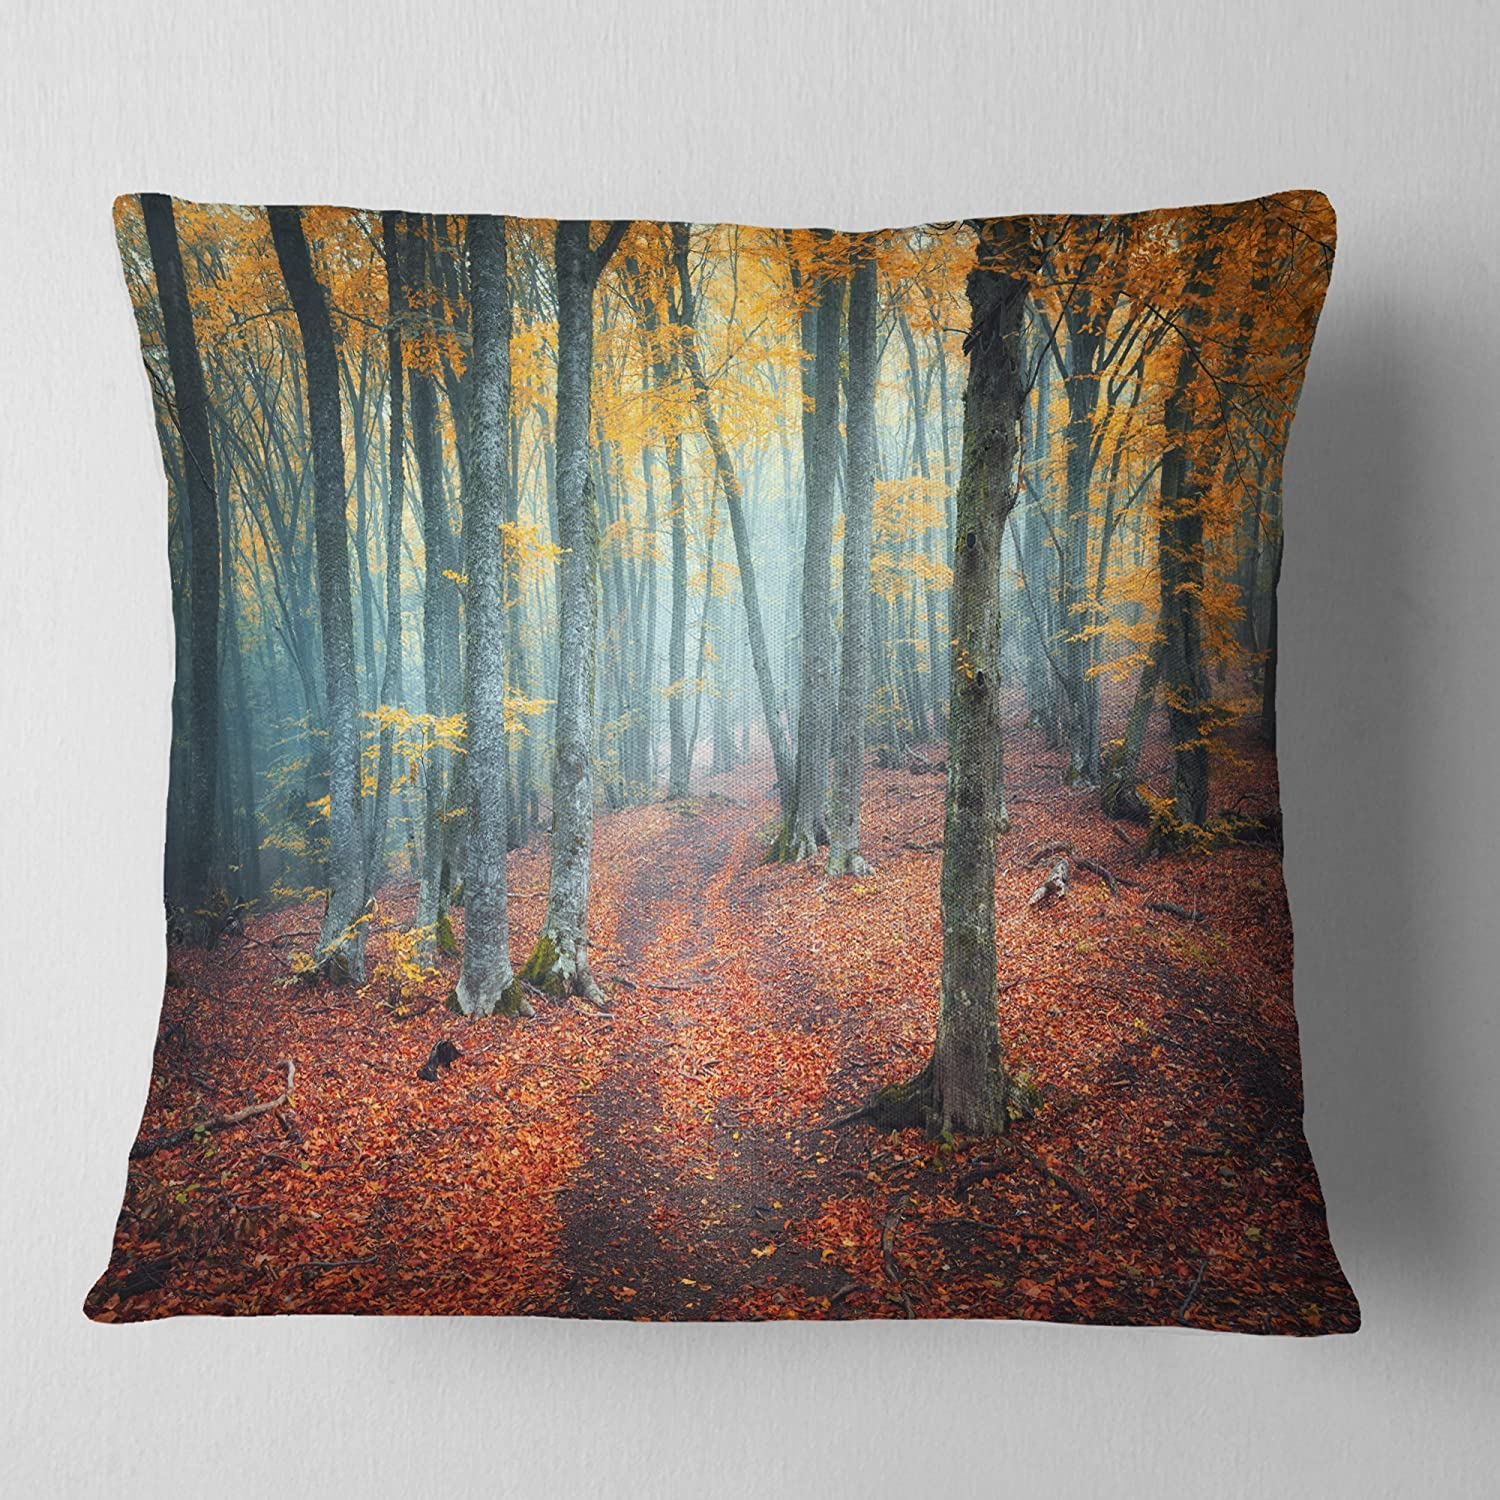 Sofa Throw Pillow 26 in Insert Printed On Both Side x 26 in in Designart CU8619-26-26 Red and Yellow Autumn Forest Landscape Photography Cushion Cover for Living Room